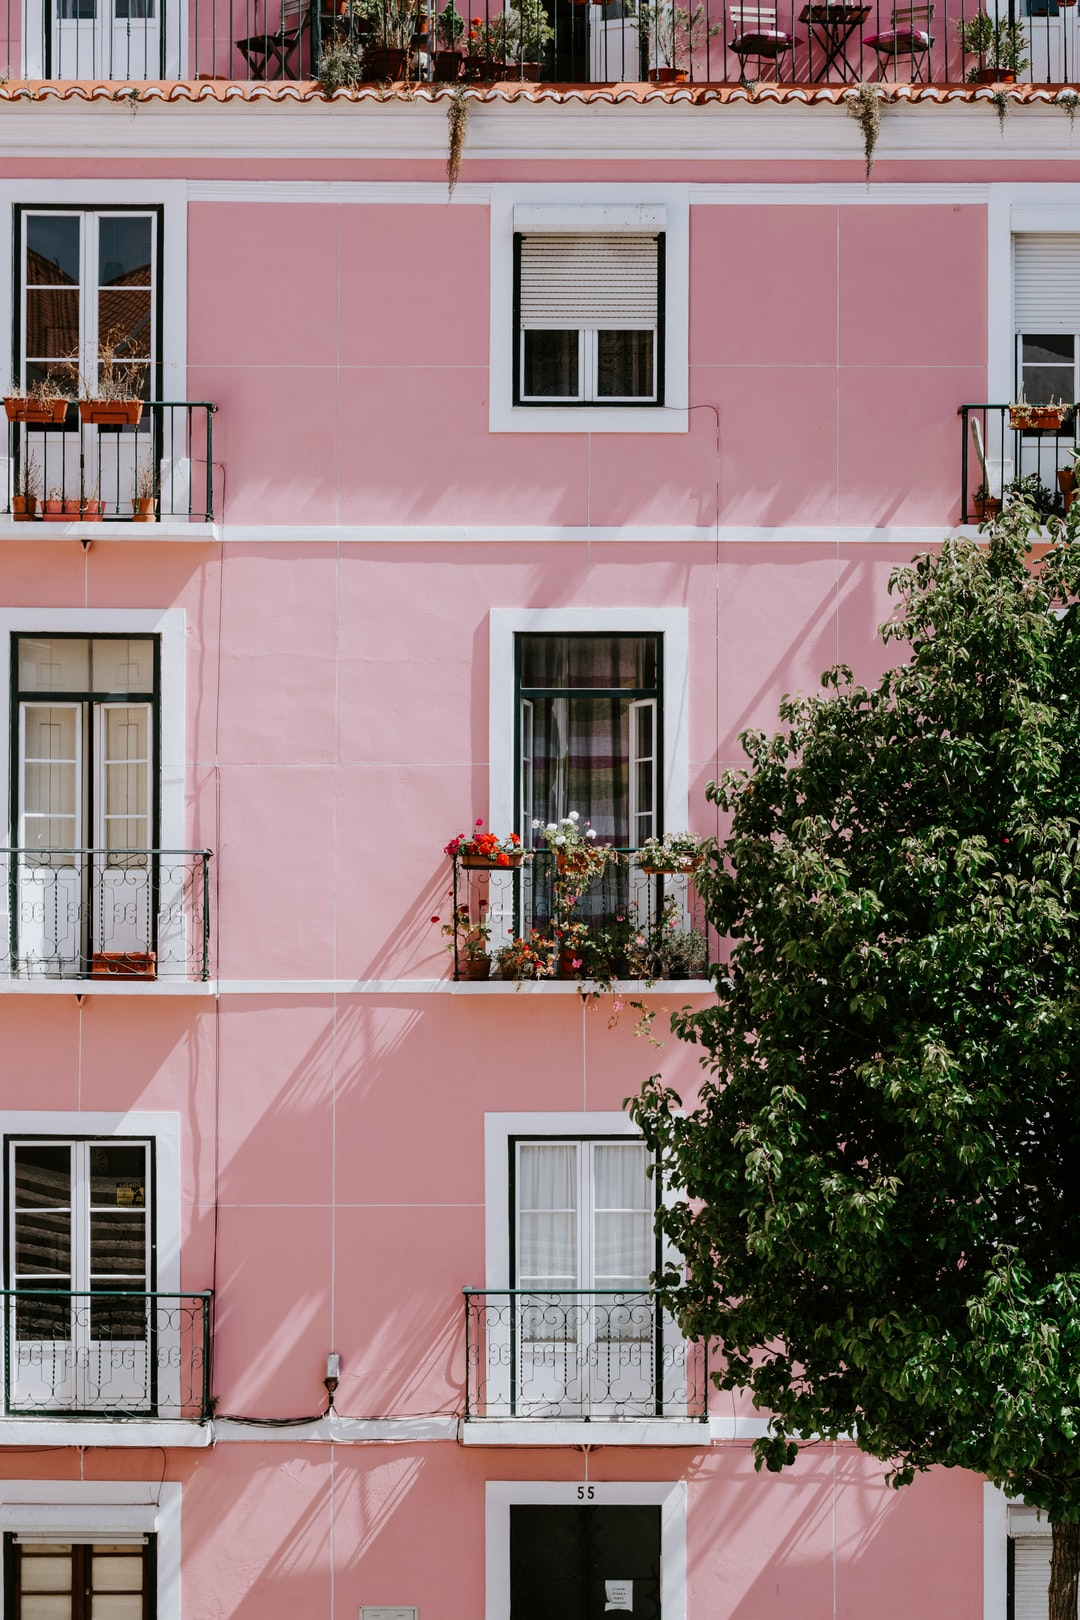 During a walk in Lisbon, we got lost. We walked for hours but then I saw this beautiful building with the most perfect balcony. How lovely do these flowers look?